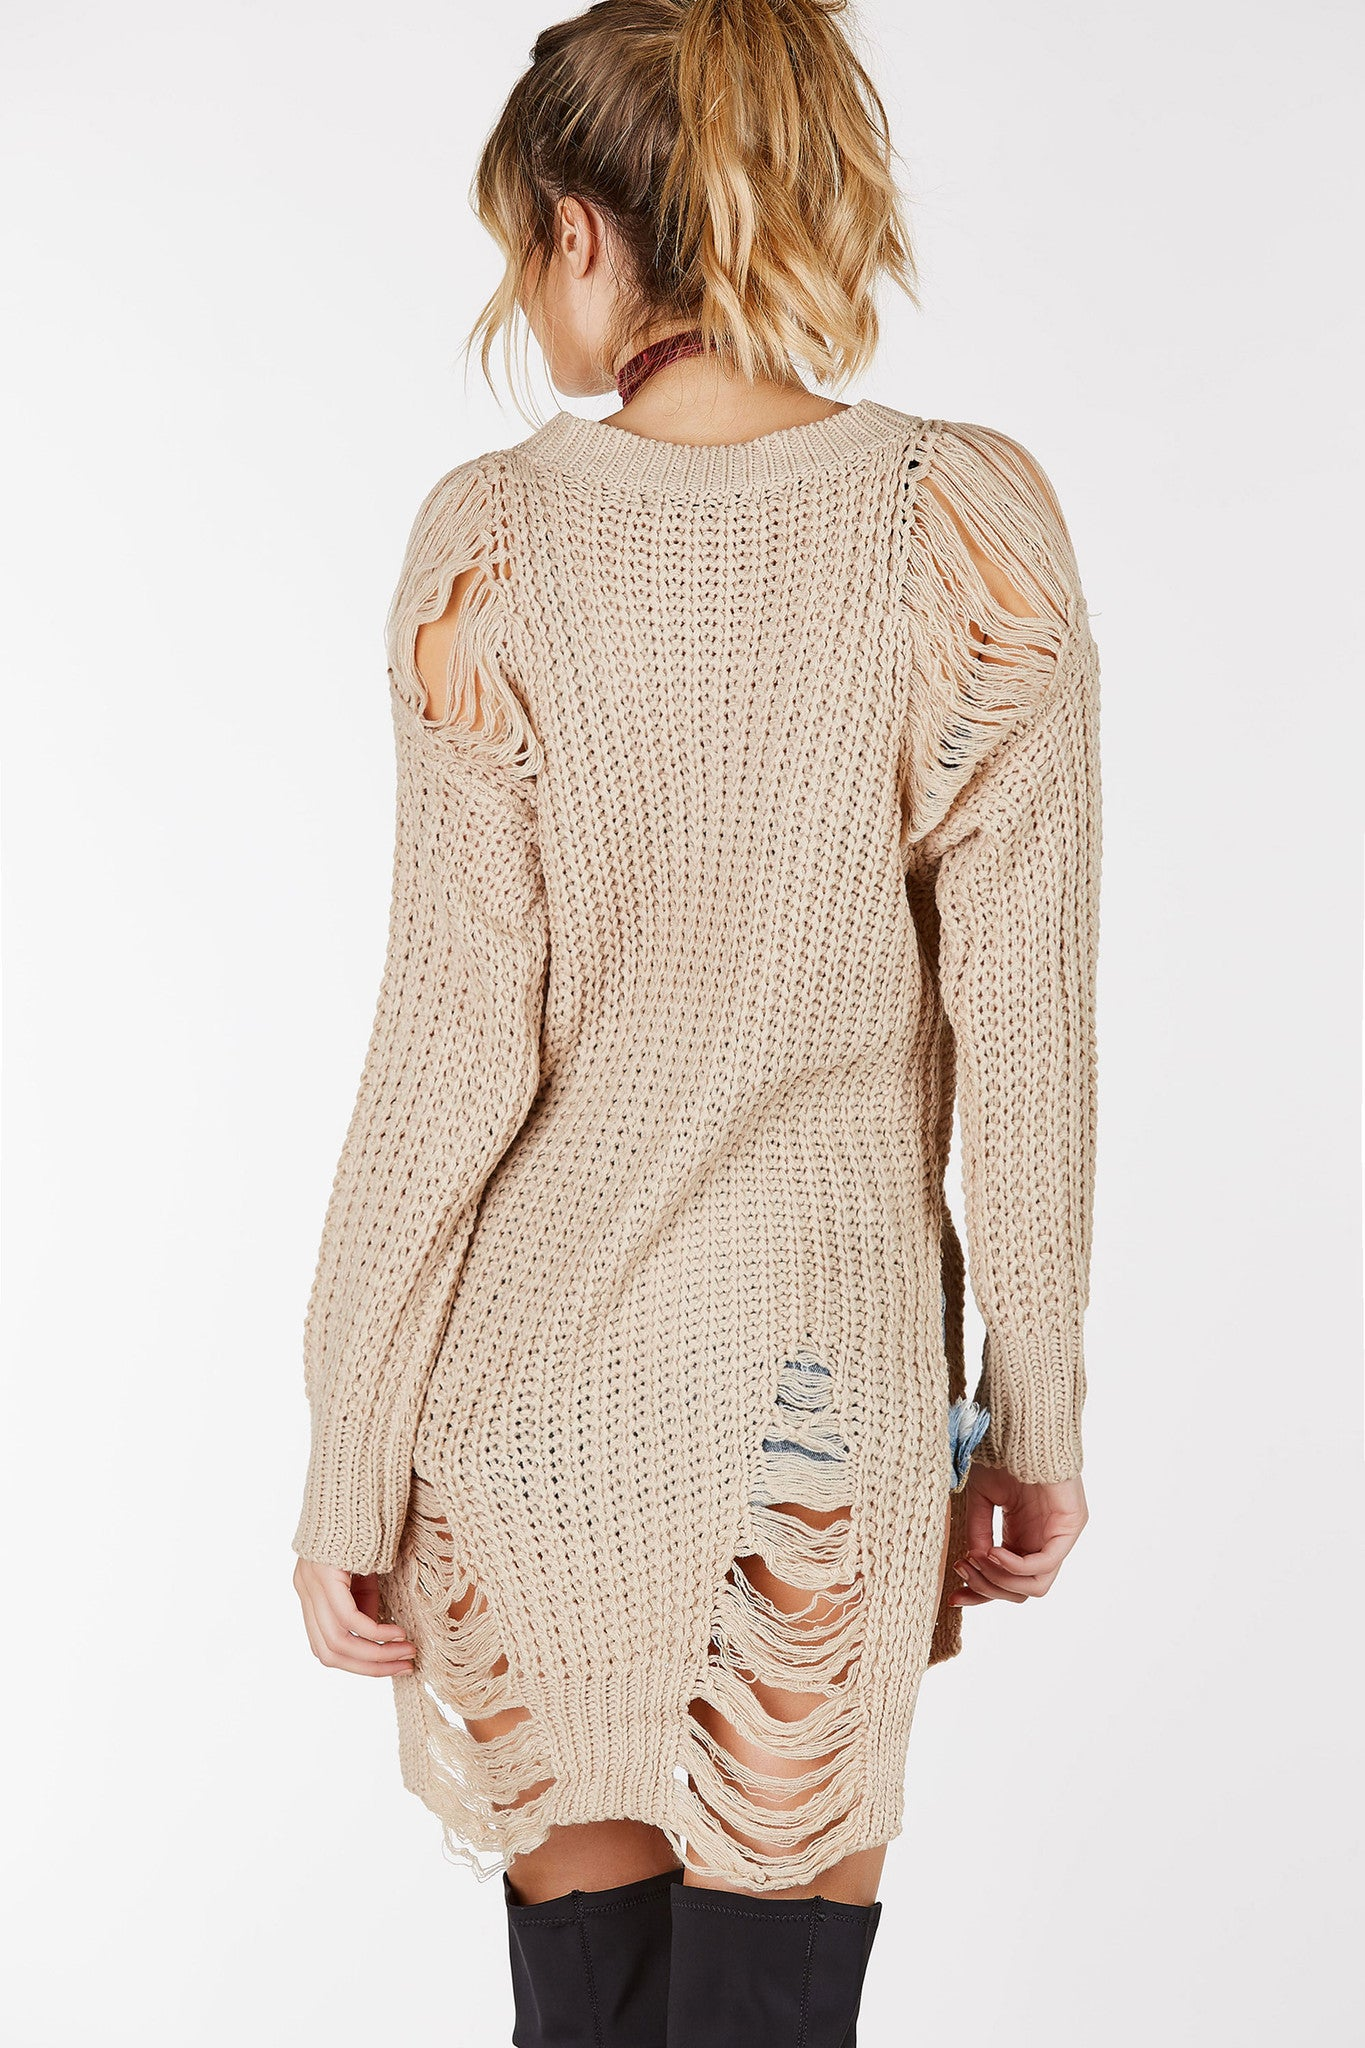 Crew neckline loose knit sweater. Oversized fit with shredded detailing and side slits.